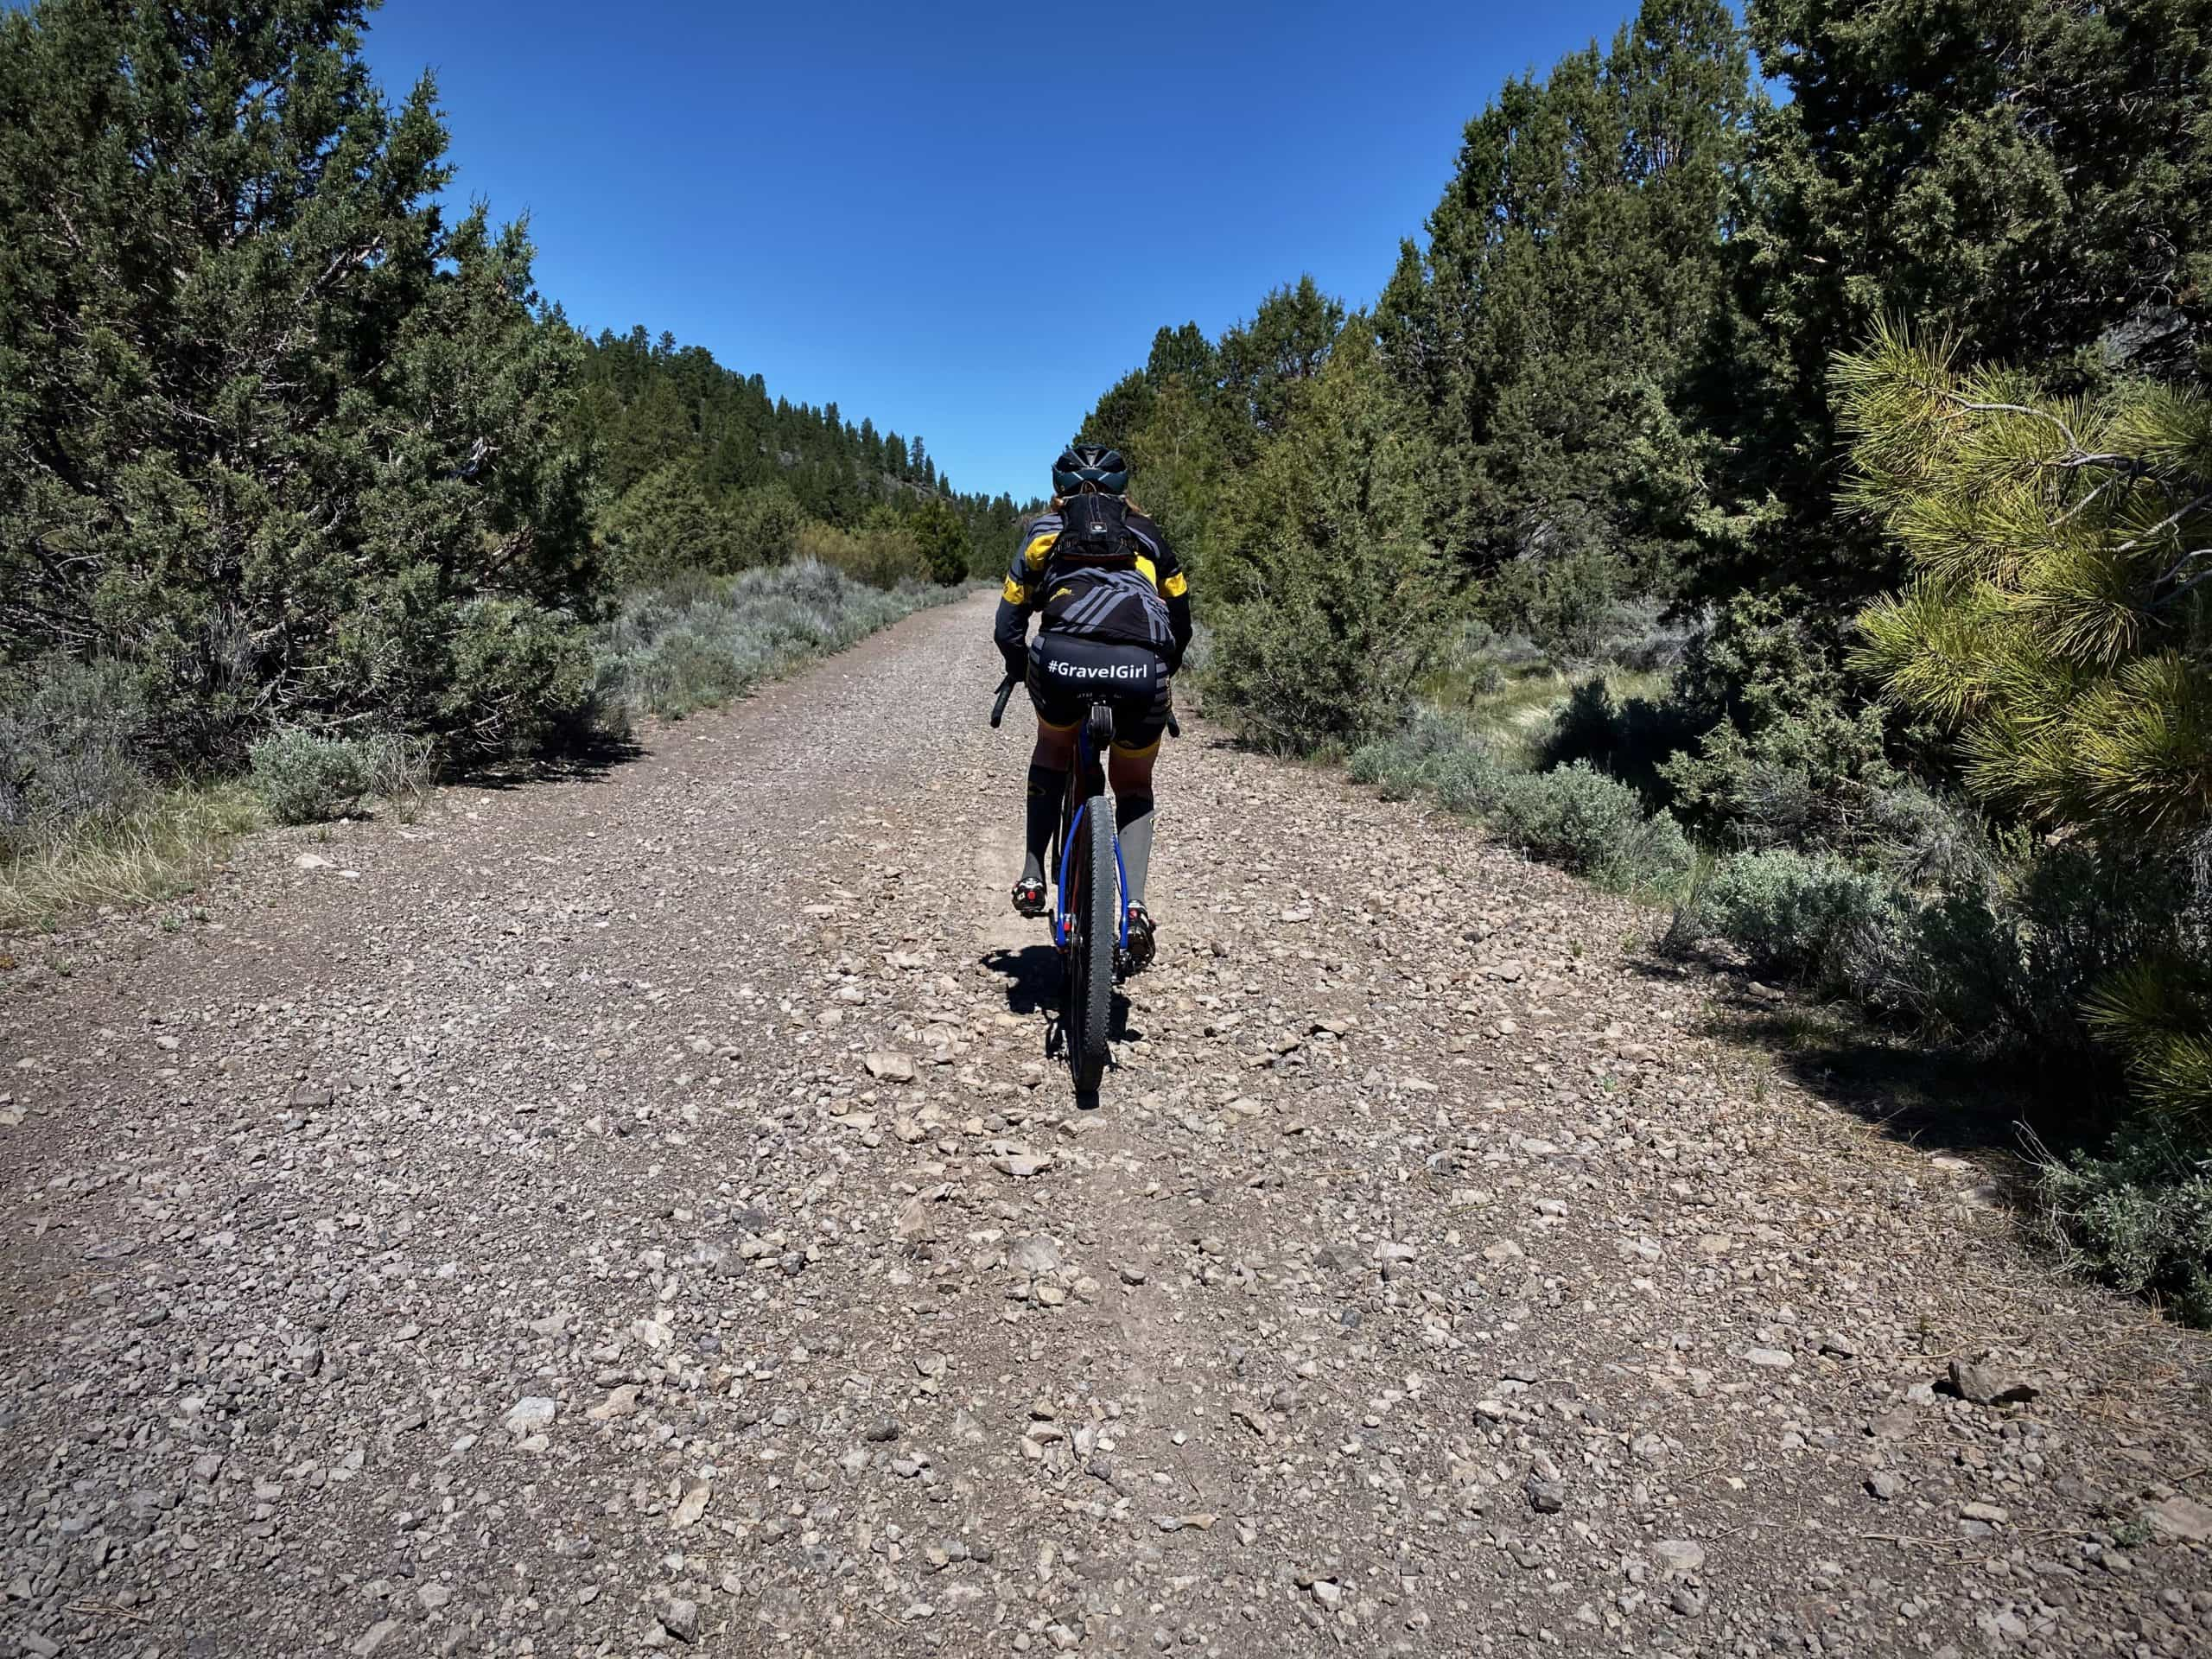 Gravel cyclist on difficulty and chunky forest service road in the Ochoco National Forest near Burns, Oregon.